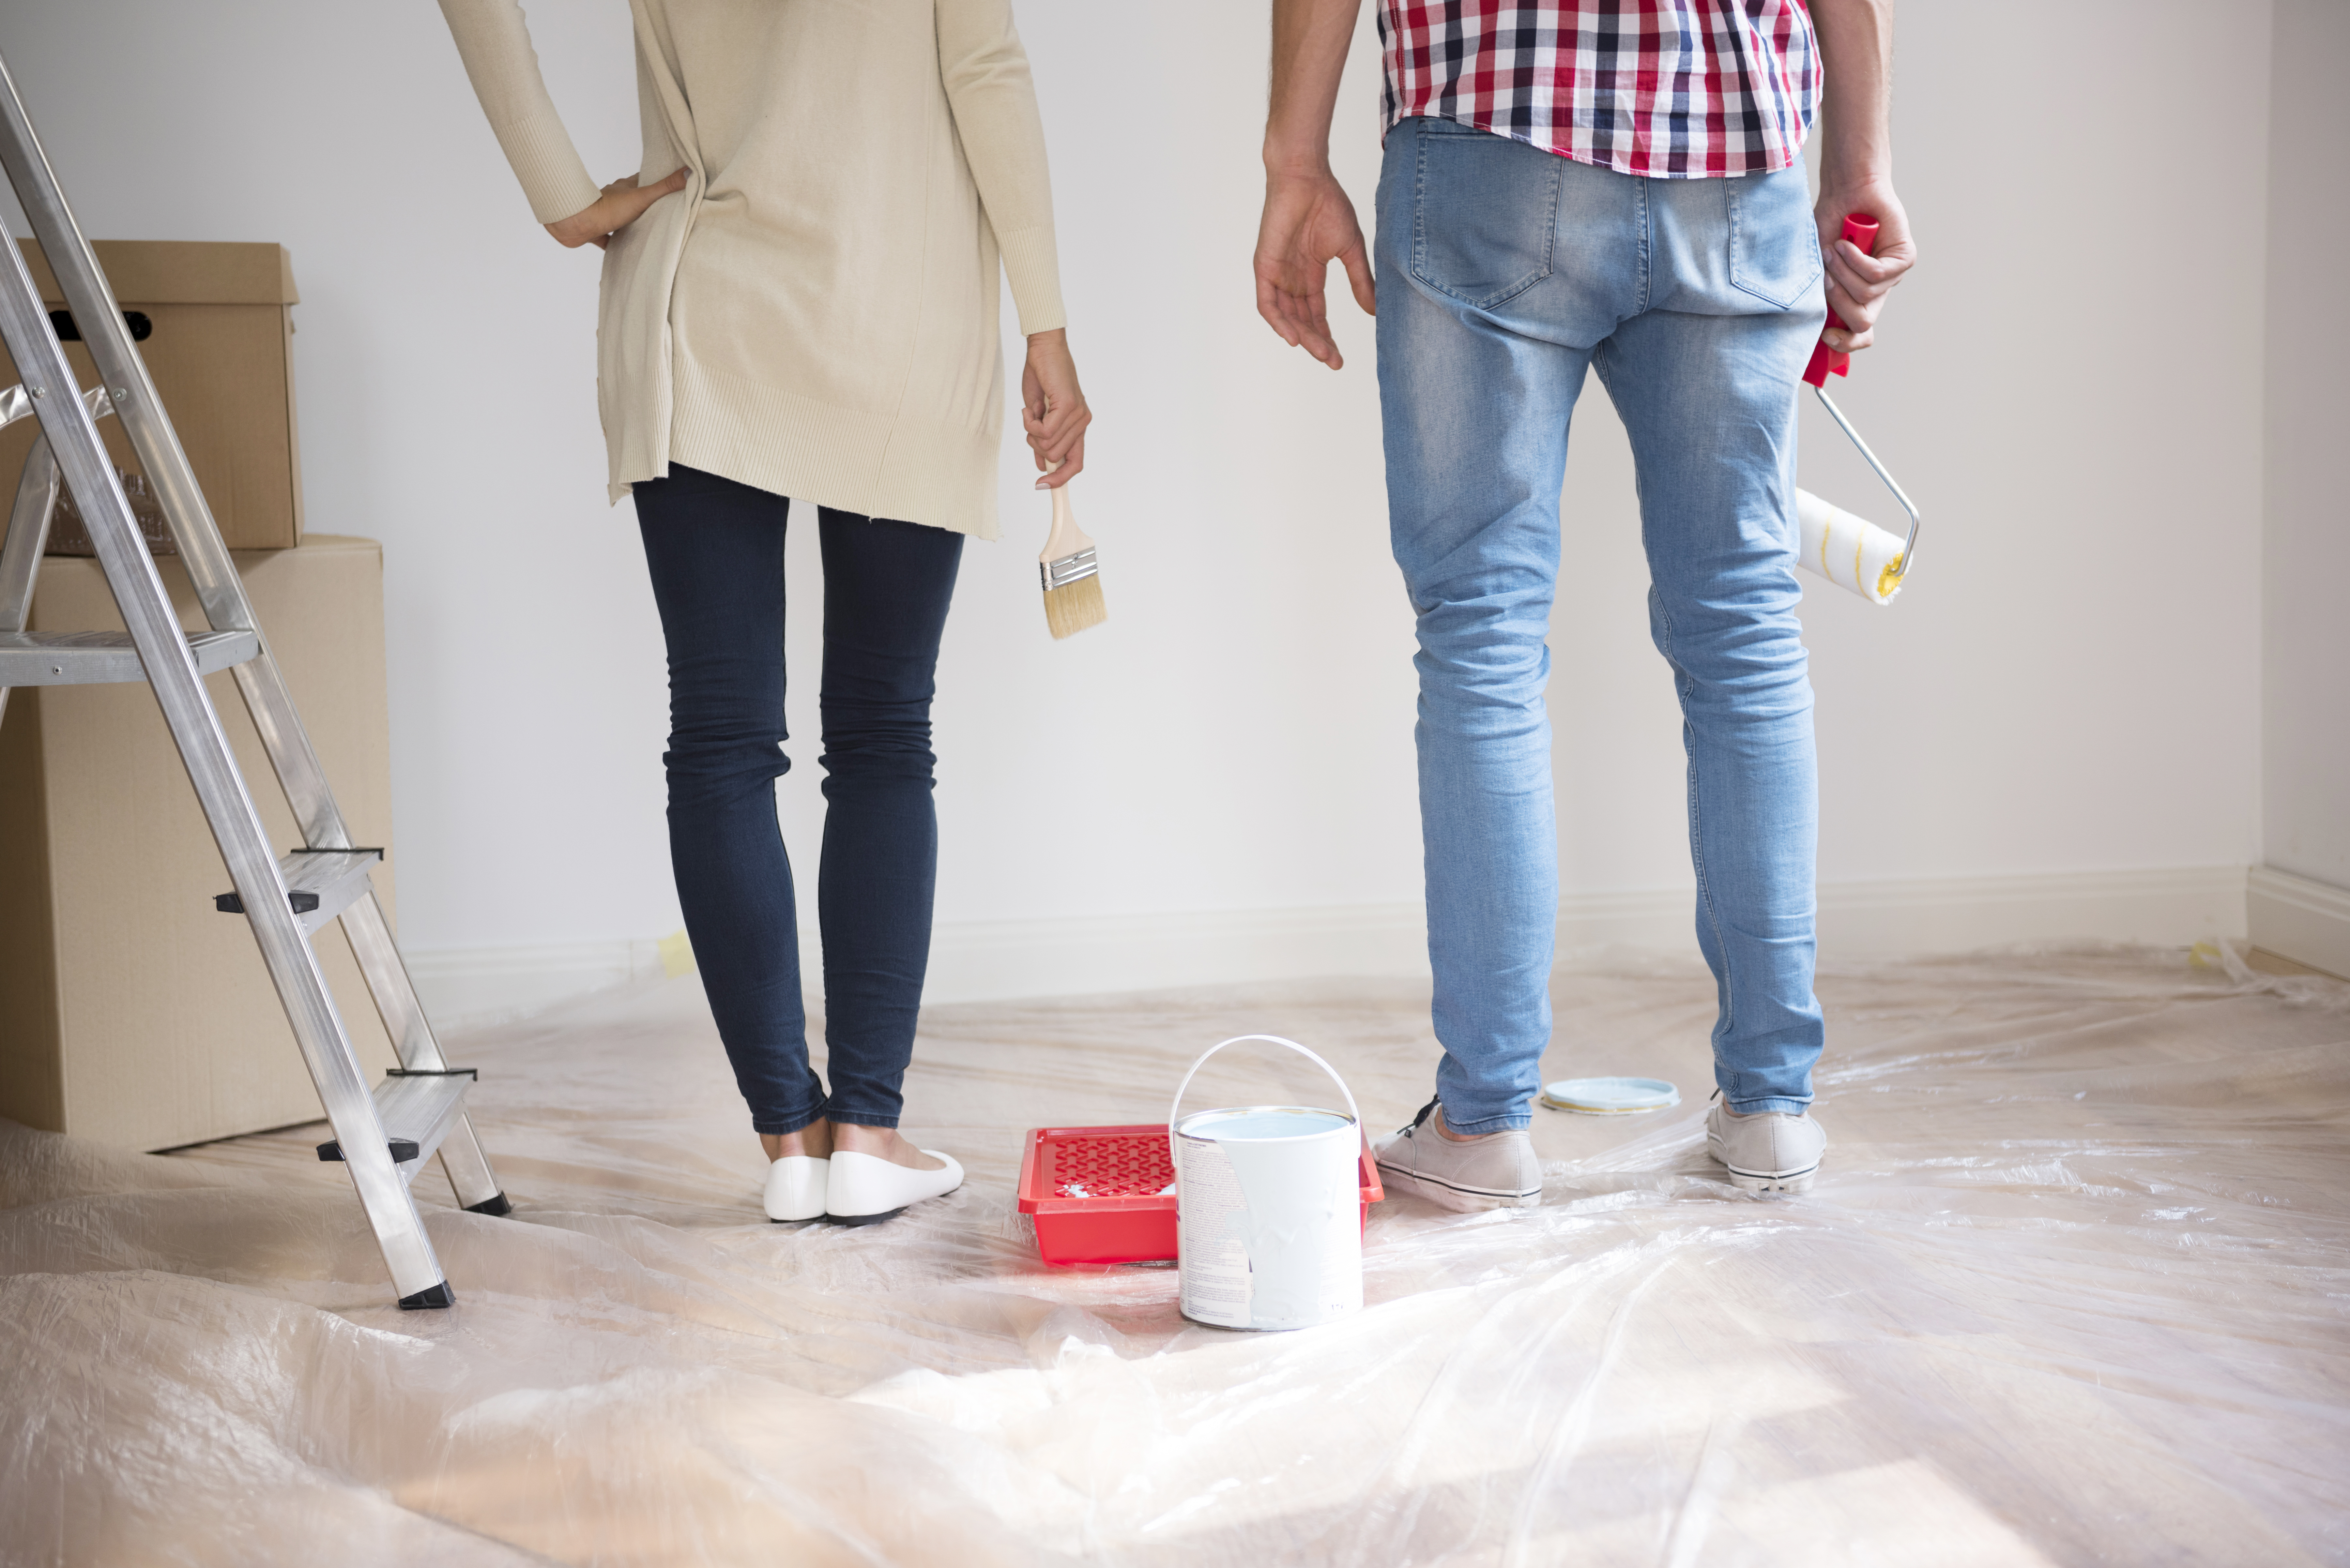 young-couple-painting-walls.jpg